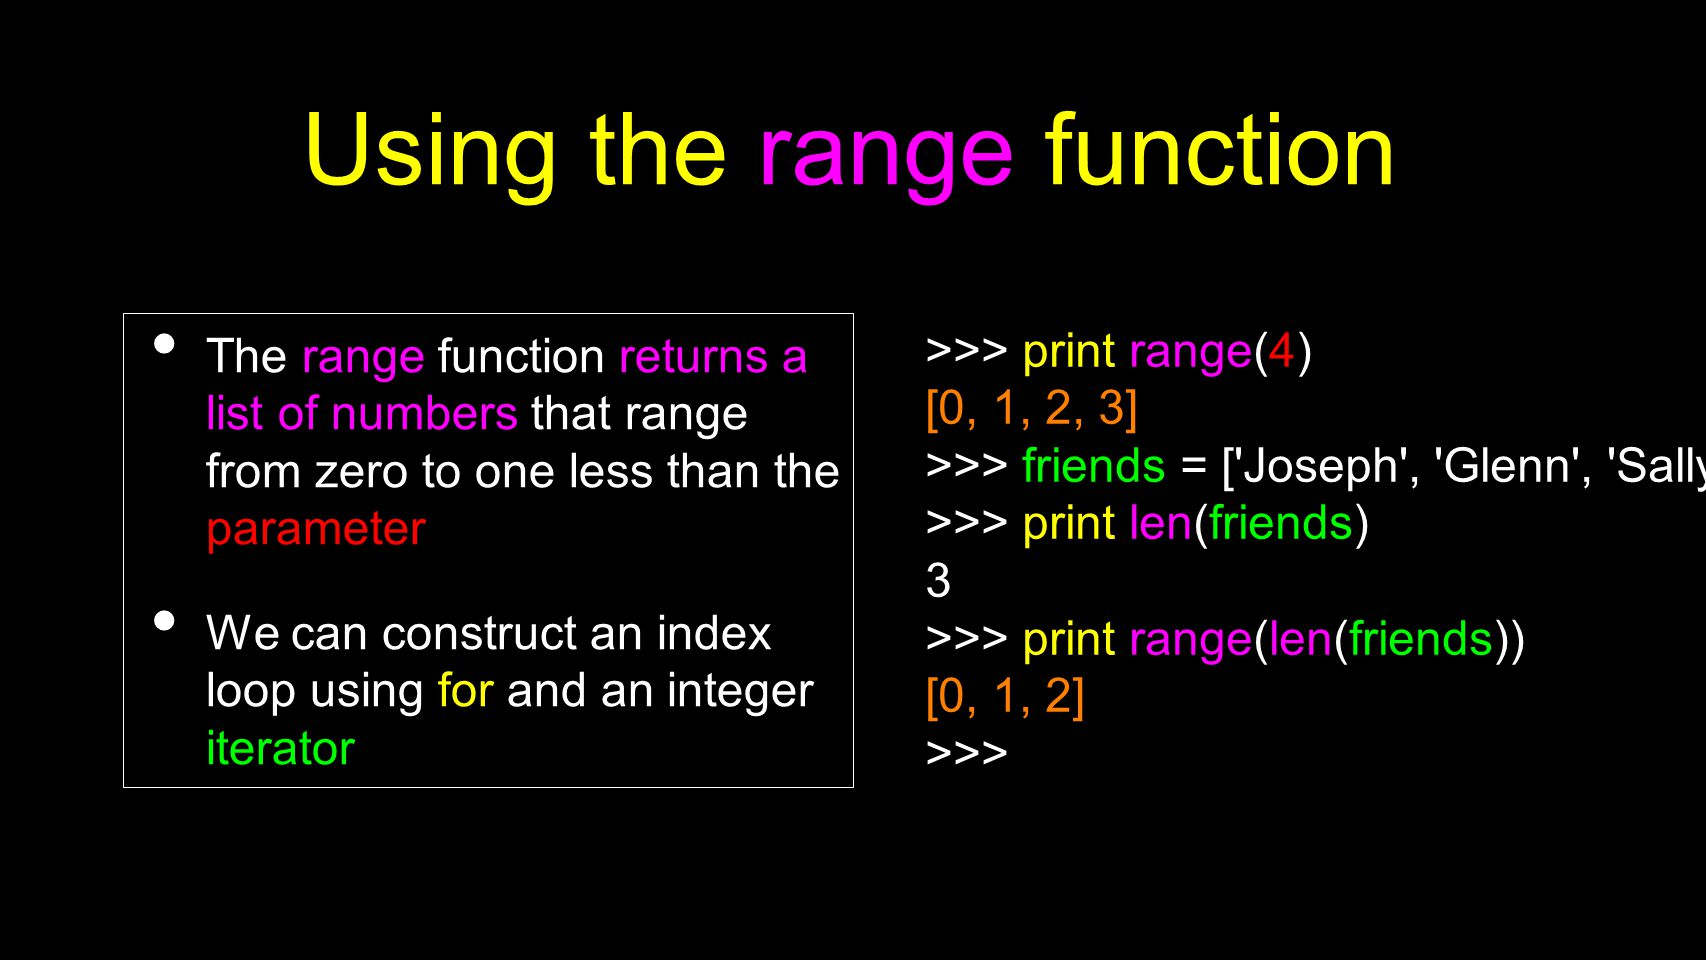 Using the range function